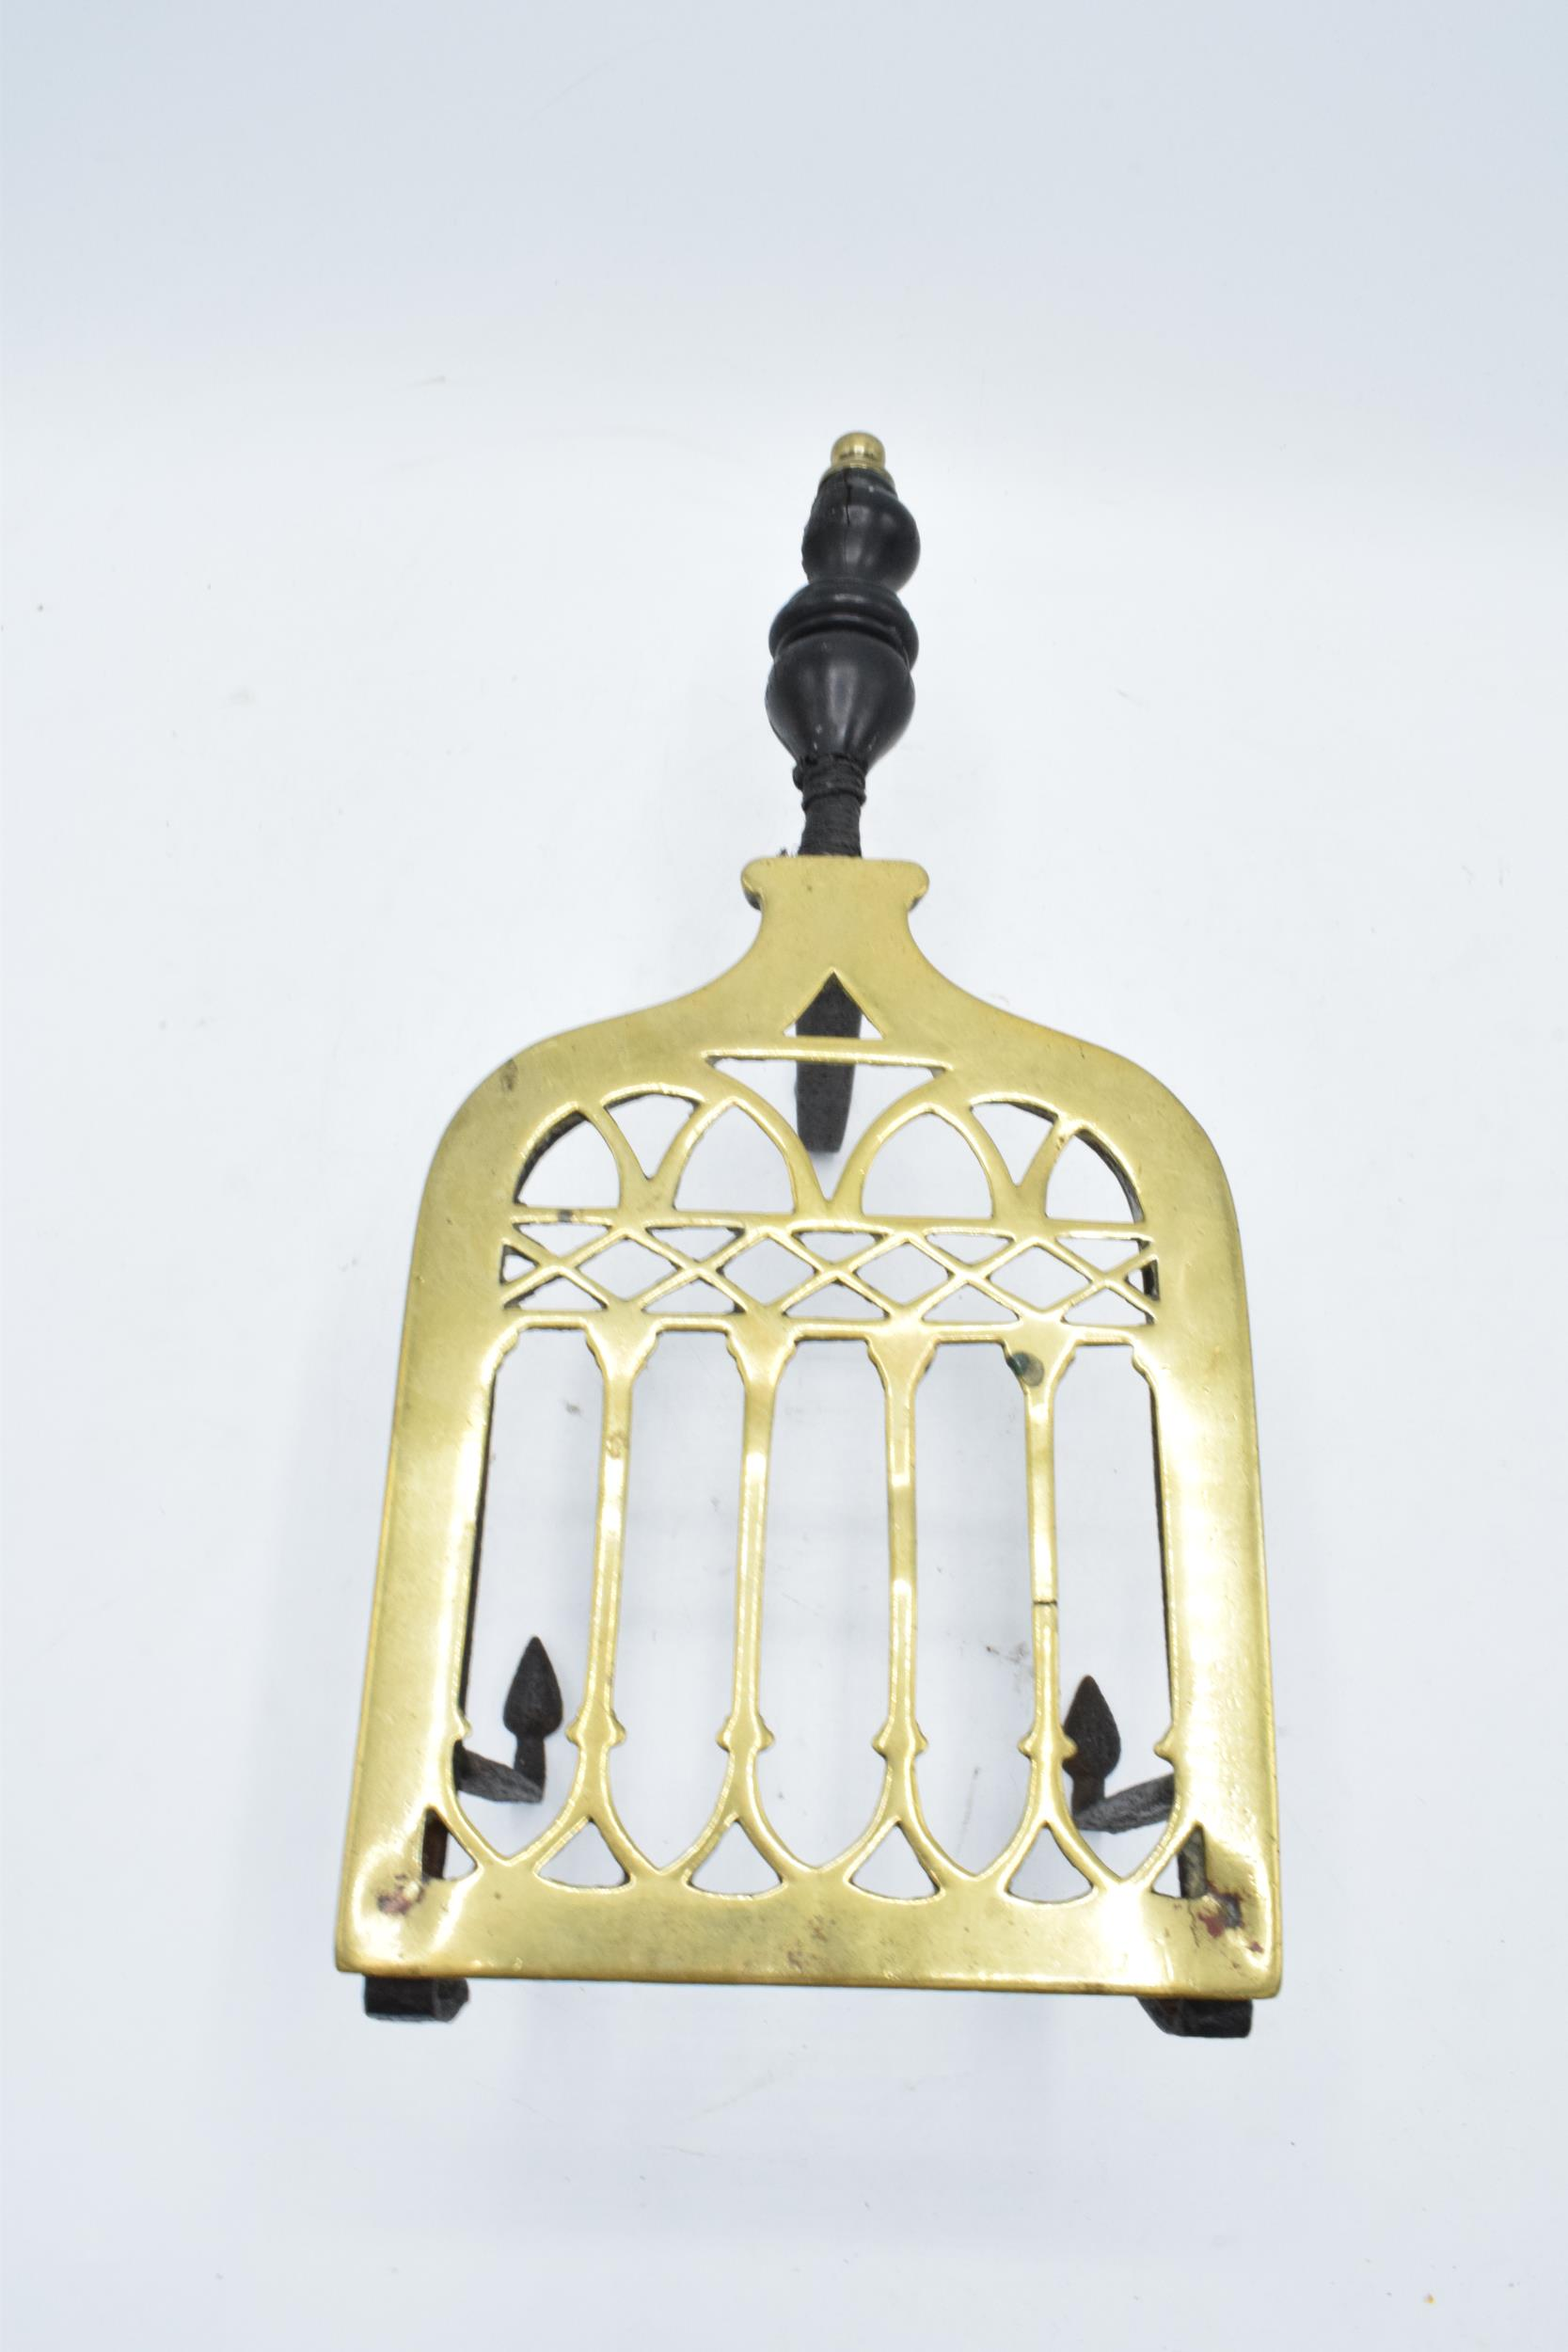 Victorian brass and iron trivet with wooden handle (some chipping to wood). - Image 3 of 6